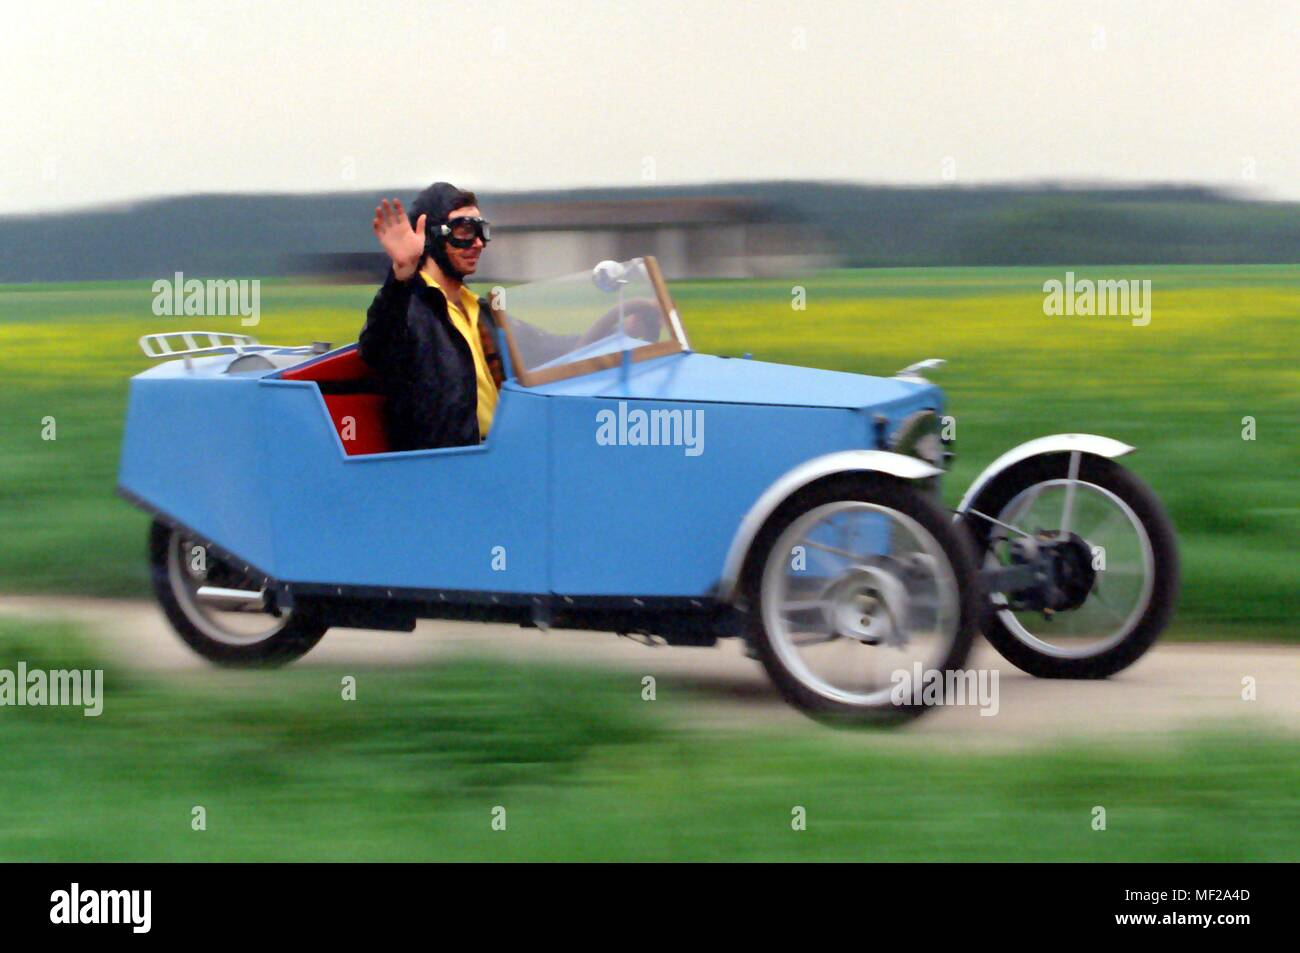 Rudolf schmidt from scheuring roars at 120 kmh in a self made rudolf schmidt from scheuring roars at 120 kmh in a self made motorbike car on 551999 on a dirt road the blueprint for the danger from 1925 was the malvernweather Images